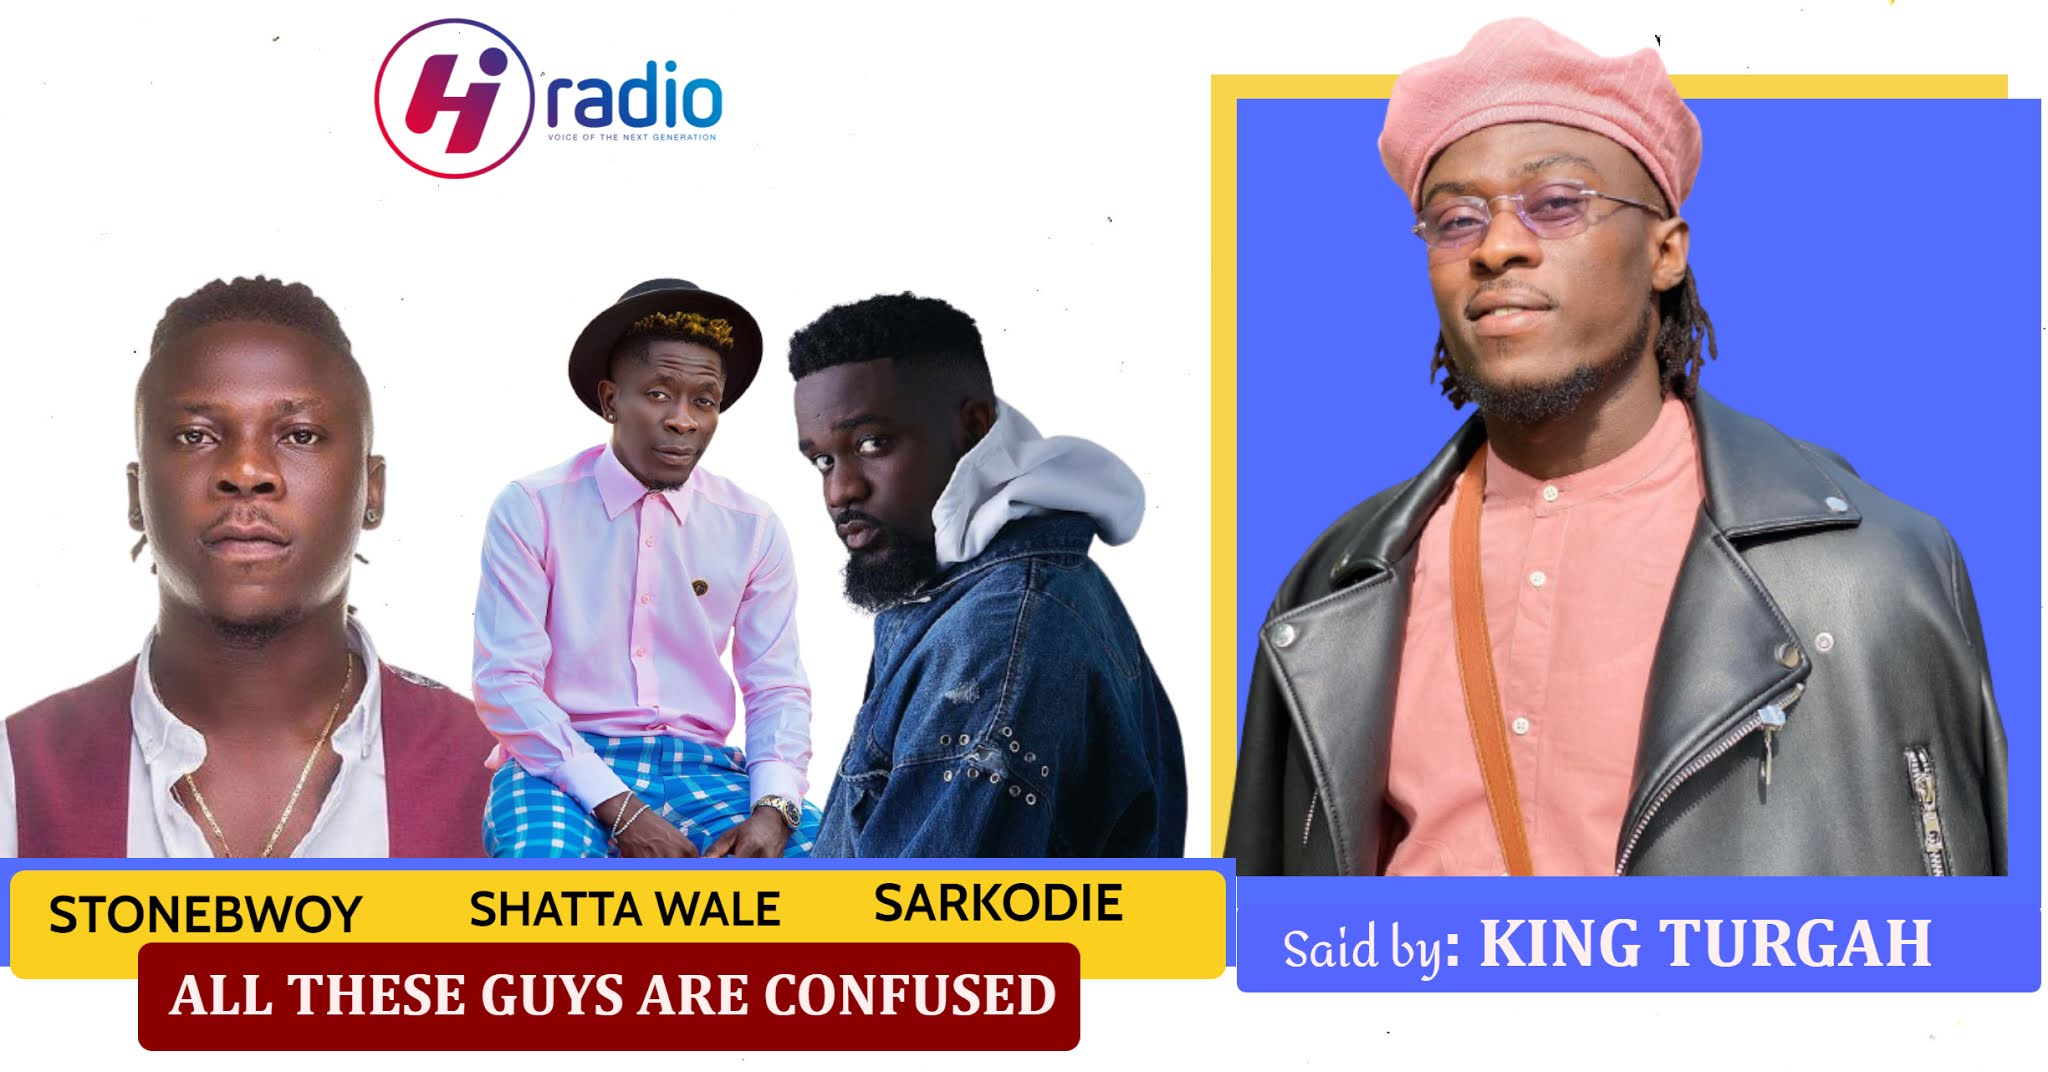 Stonebwoy, Shatta Wale, Sarkodie And All The Top Arts In GH Are All Confused.